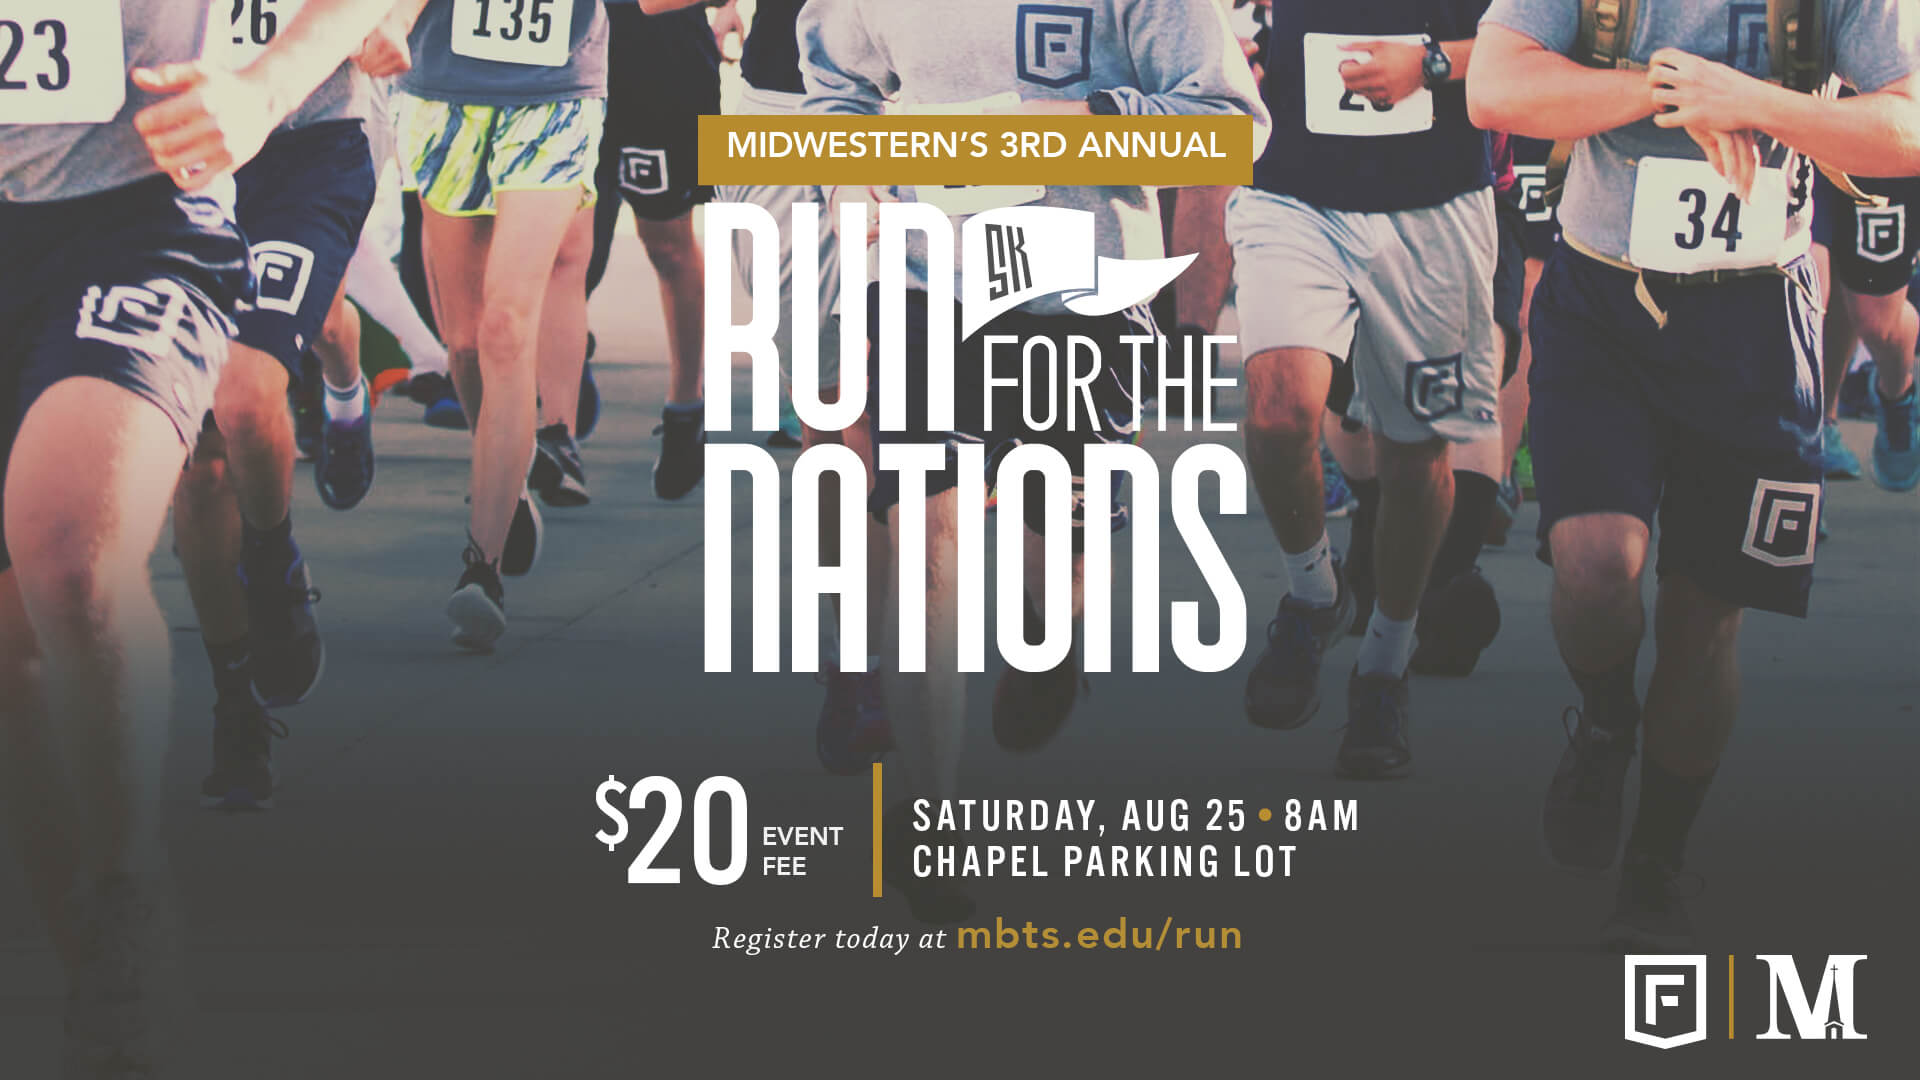 2018 Run for the Nations 5K